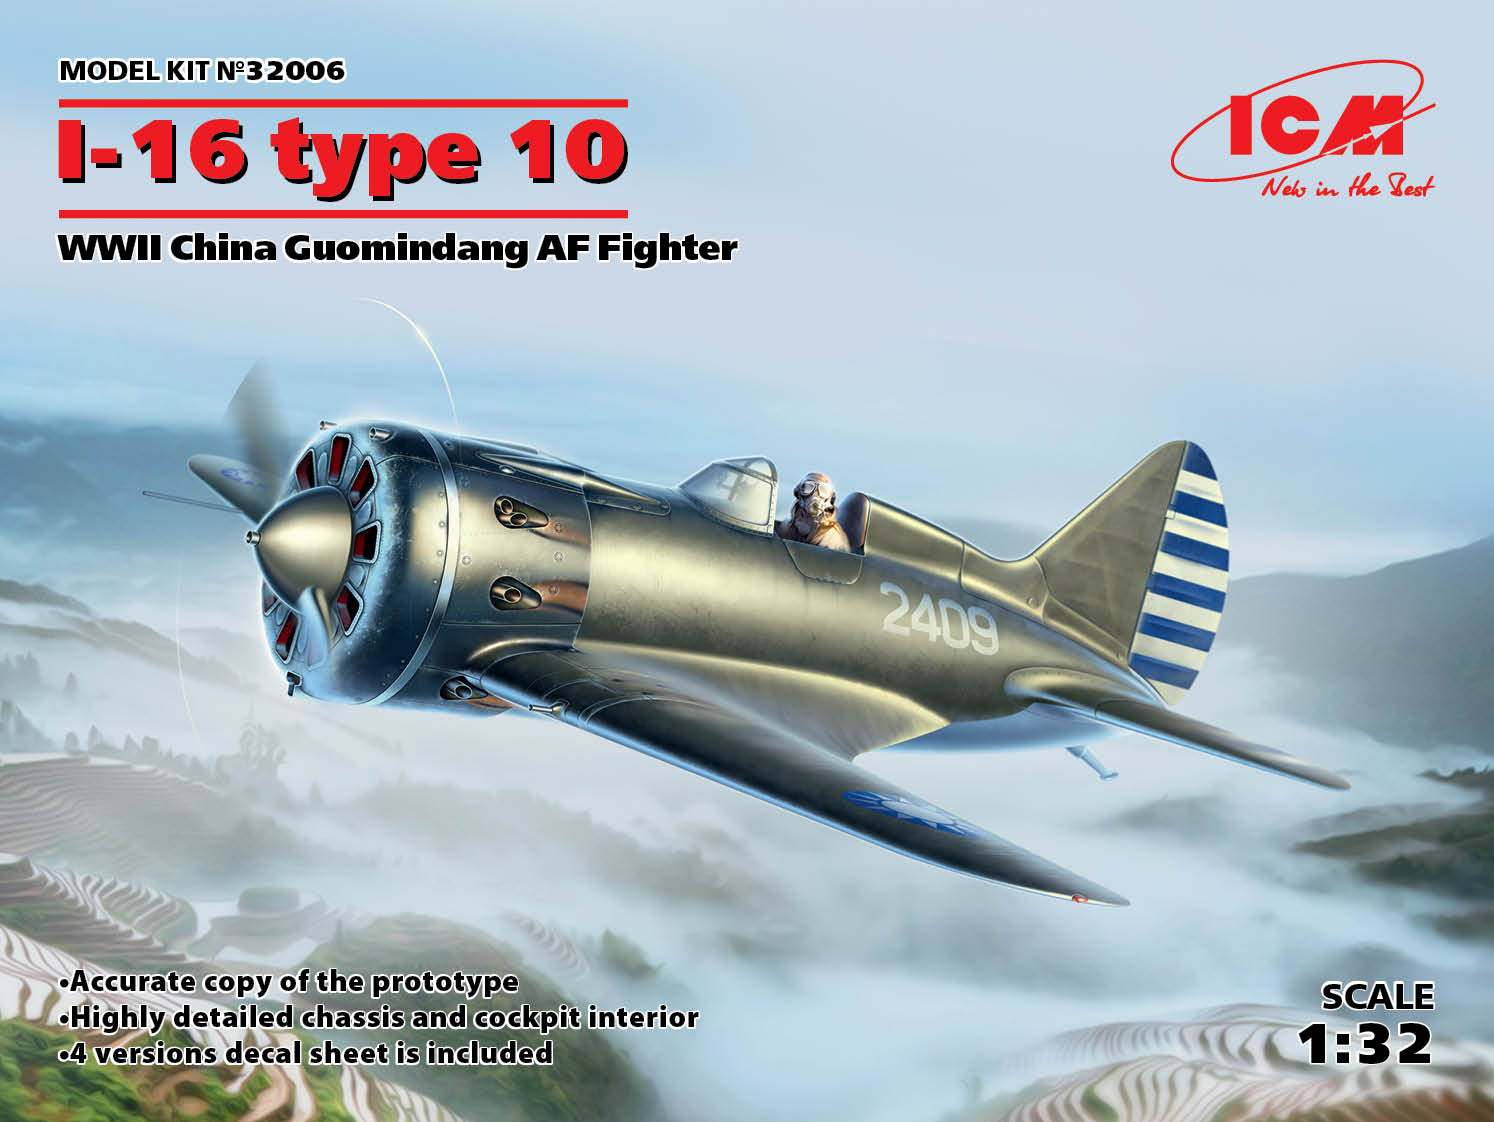 ICM I-16 type 10, WWII China Guomindang AF Fighter